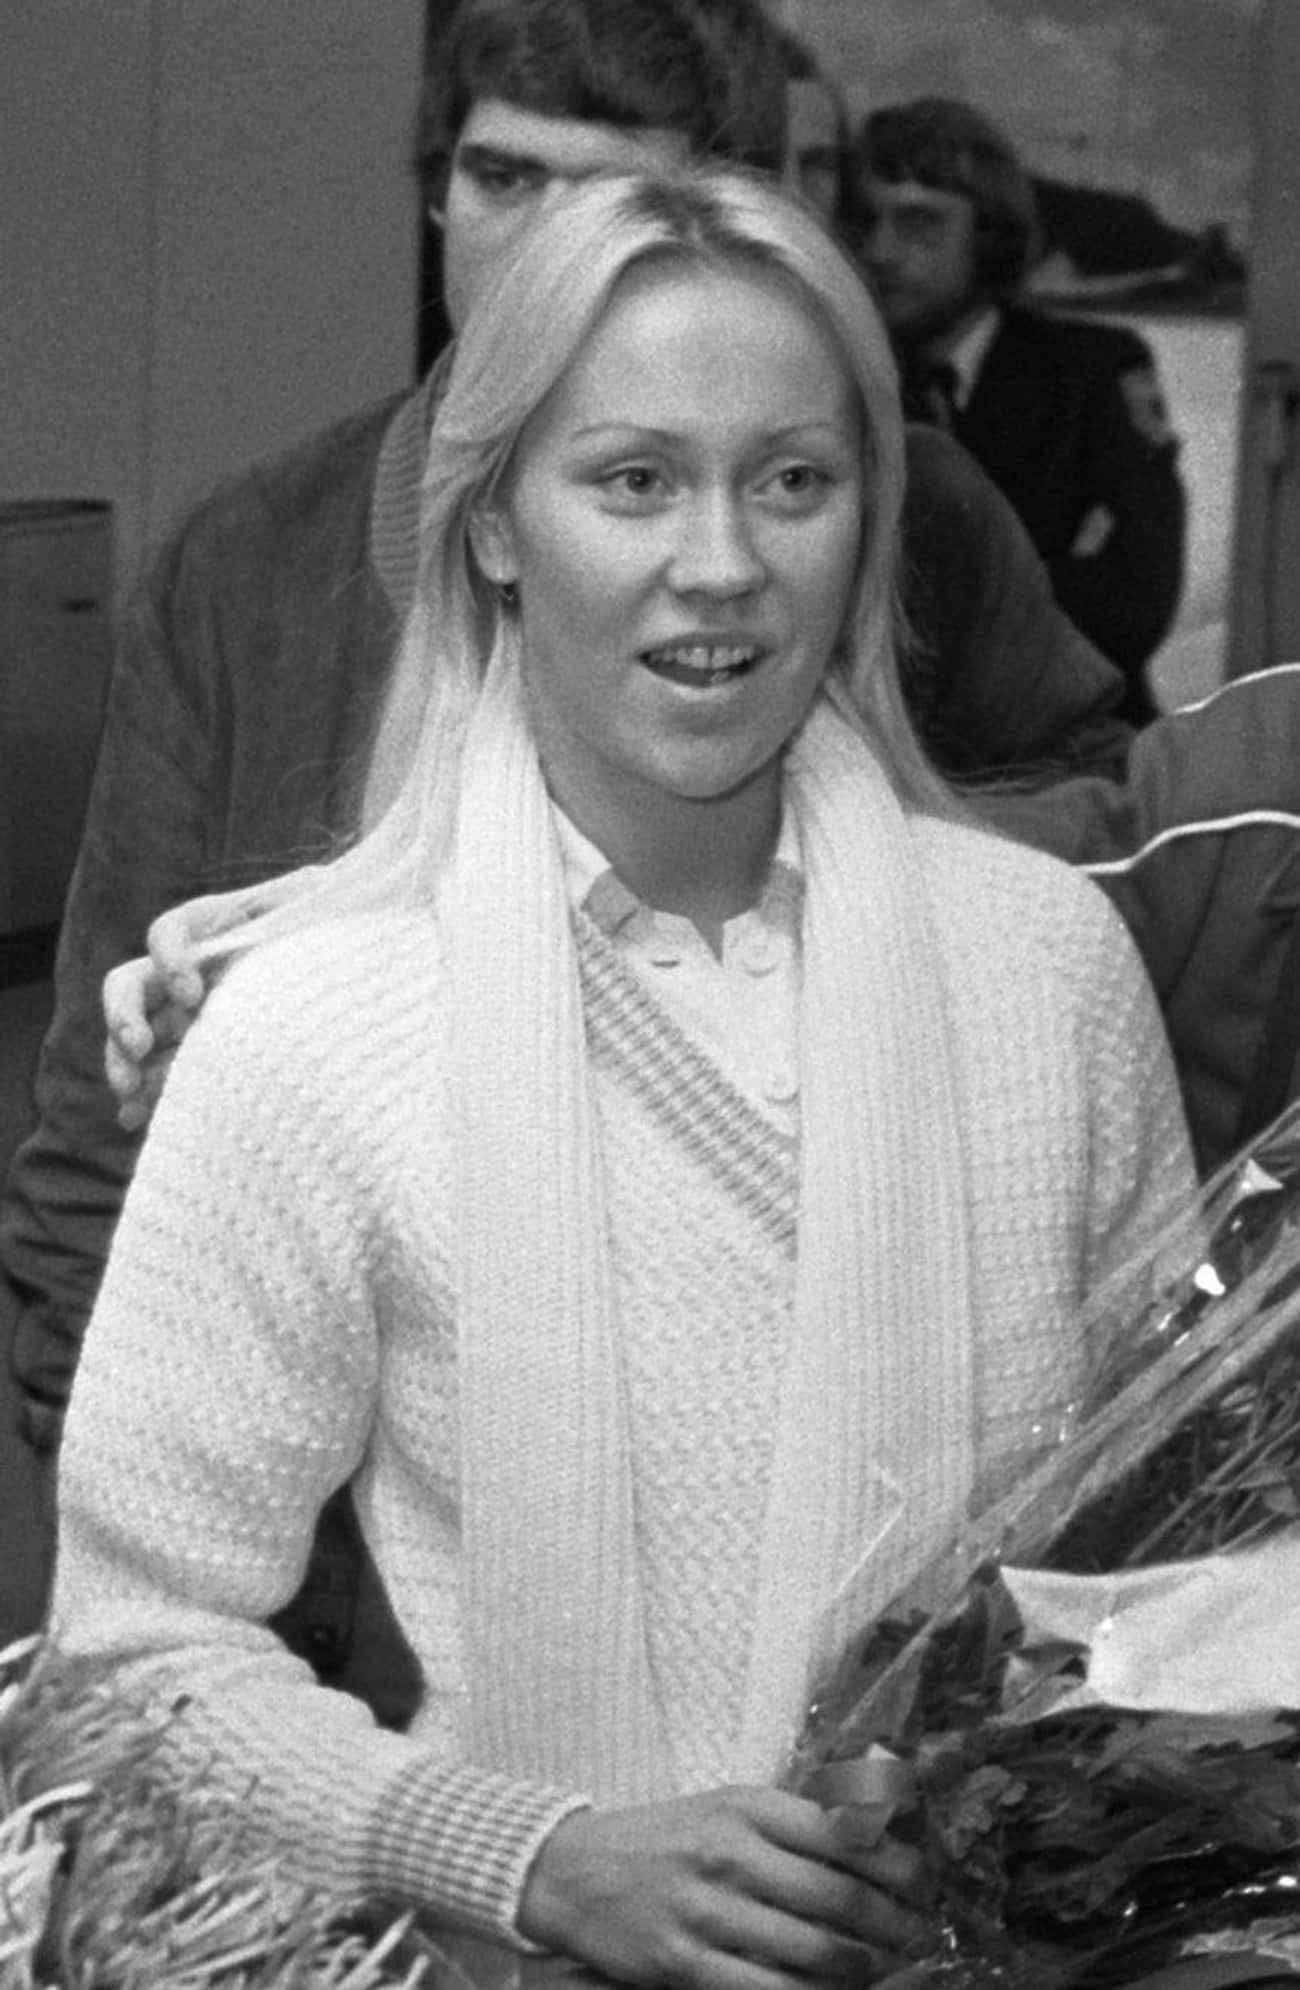 Agnetha Fältskog Had Terrible  is listed (or ranked) 3 on the list All Of The Drama And Heartache Behind ABBA's Feel-Good Disco Hits